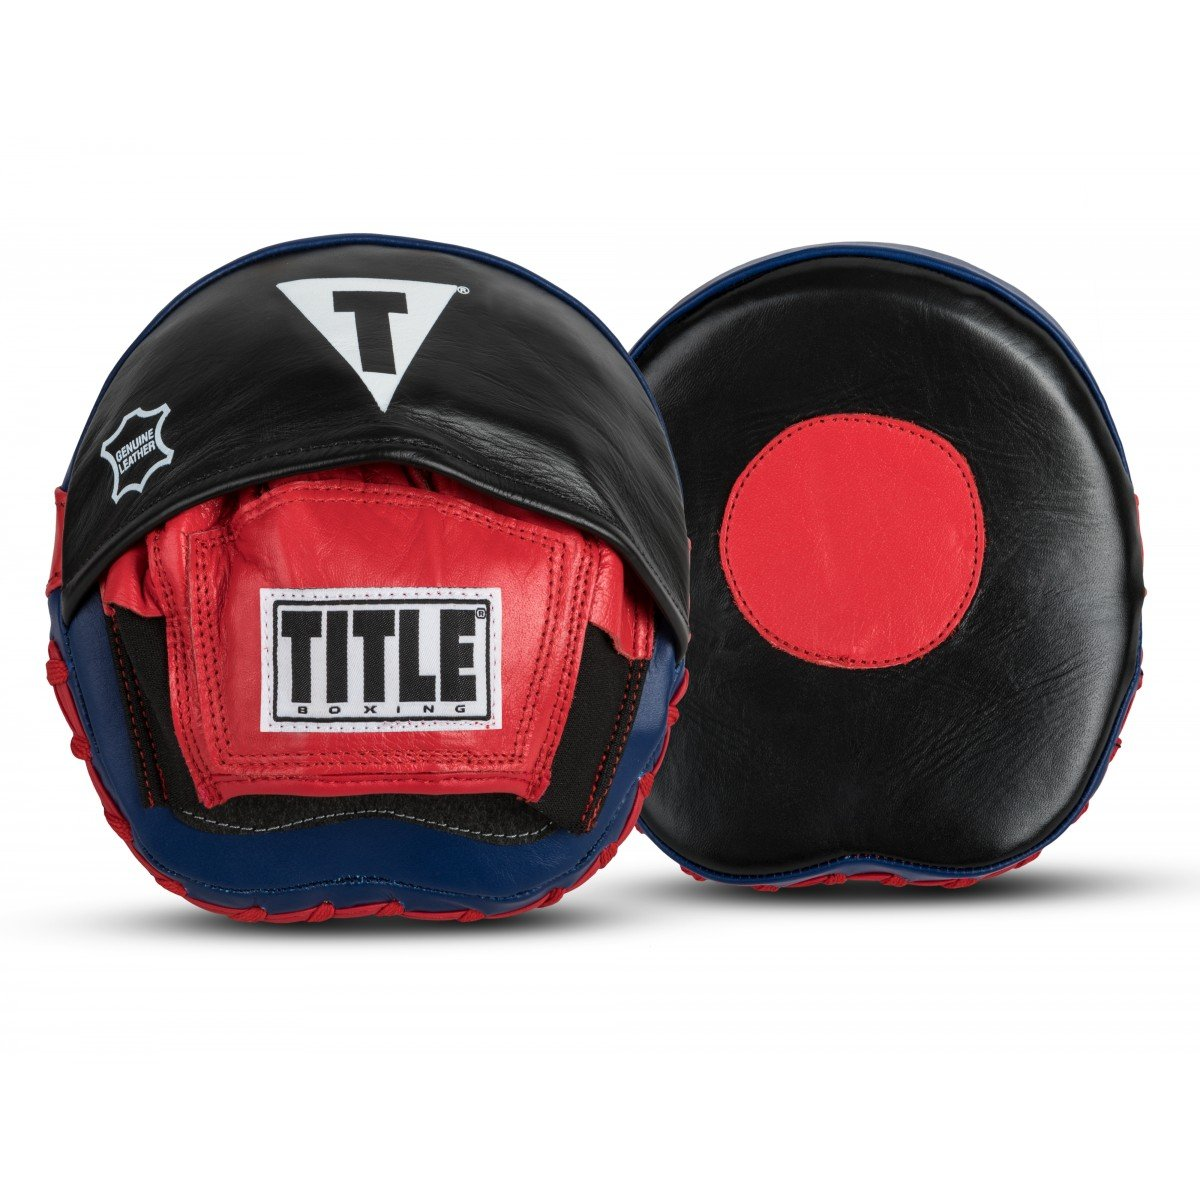 Title Boxing Speed Mitt, Black/Red/Blue